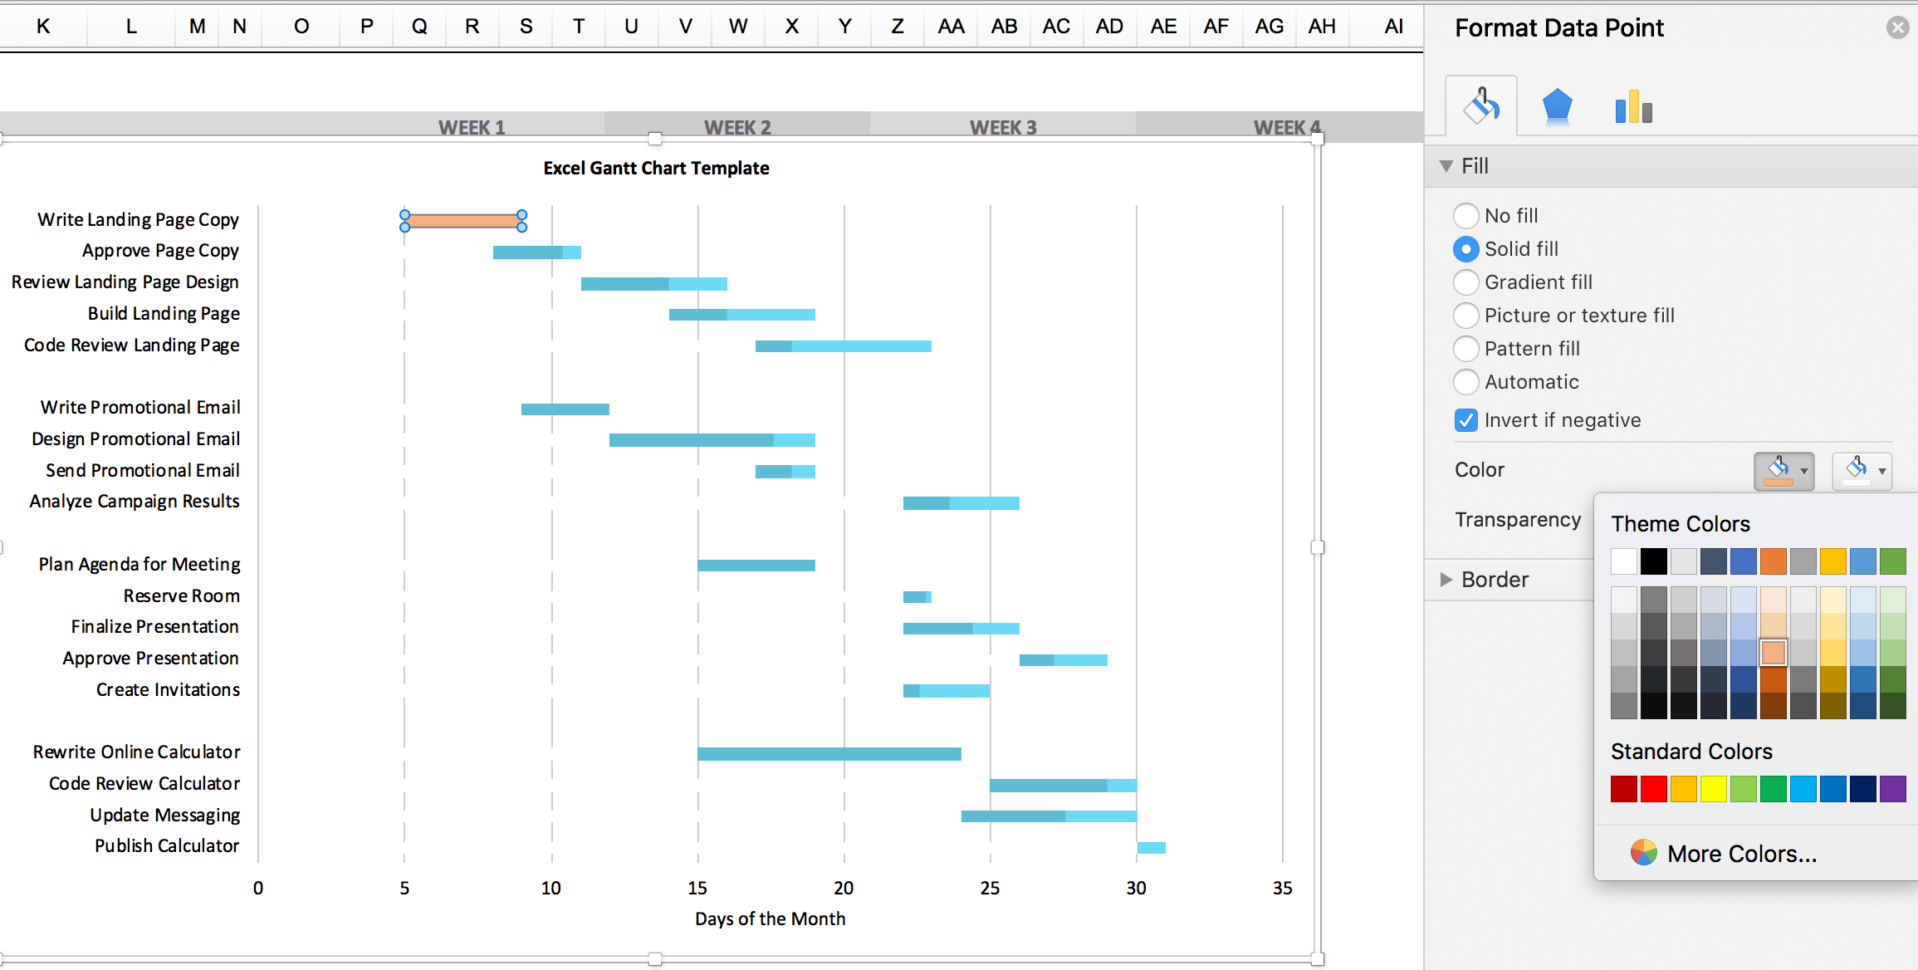 Free Gantt Chart Excel Template: Download Now | Teamgantt Throughout Free Gantt Chart Template For Mac Excel